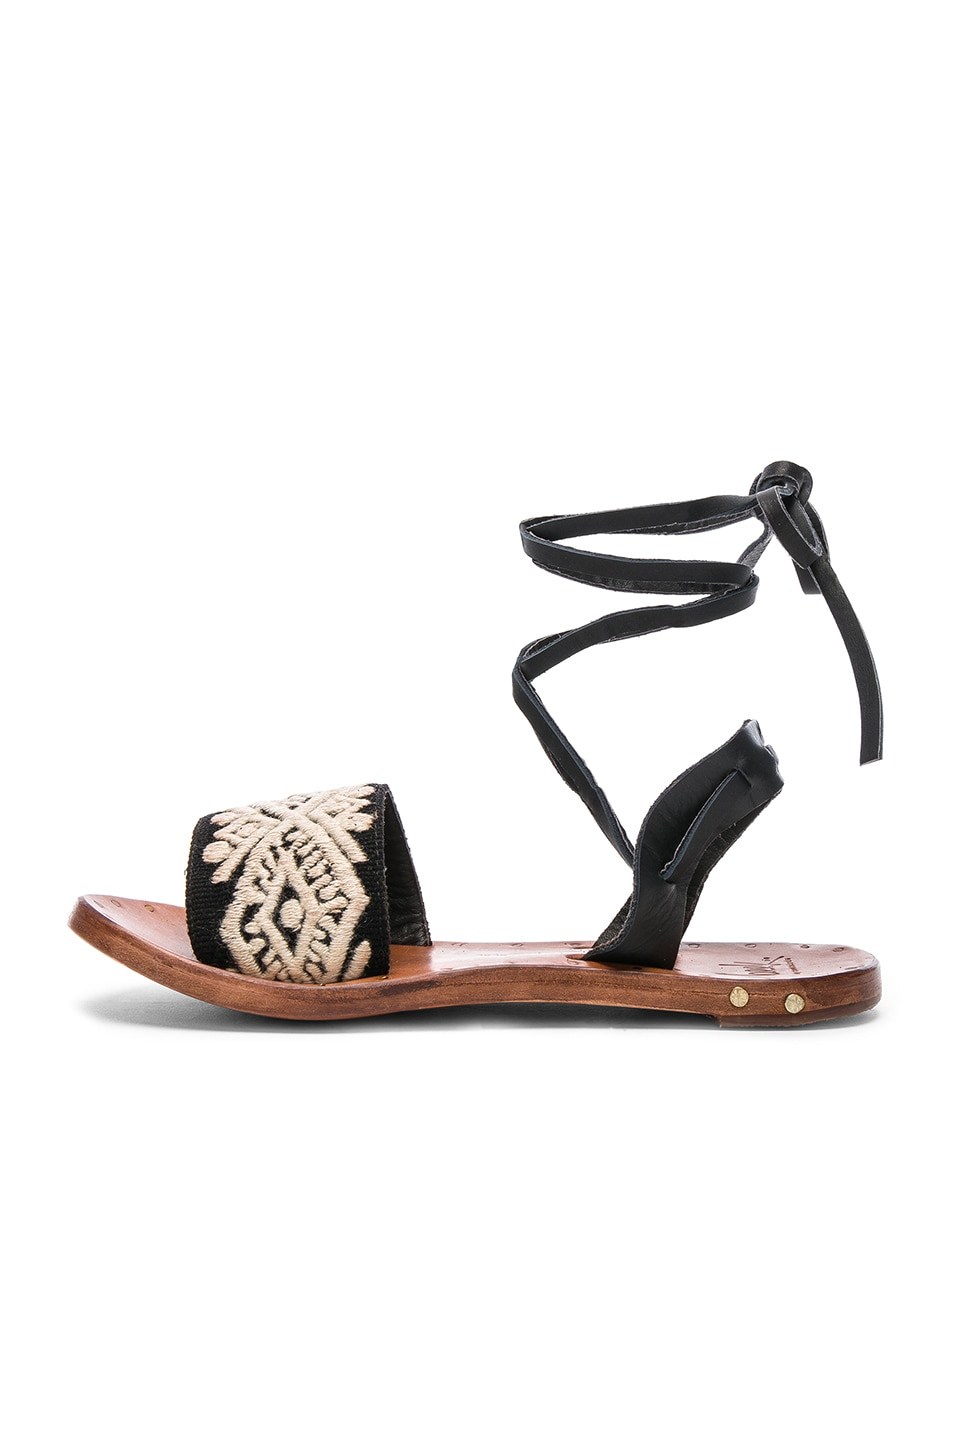 BEEK Leather & Embroidery Toucan Sandals in . oSKuQhd